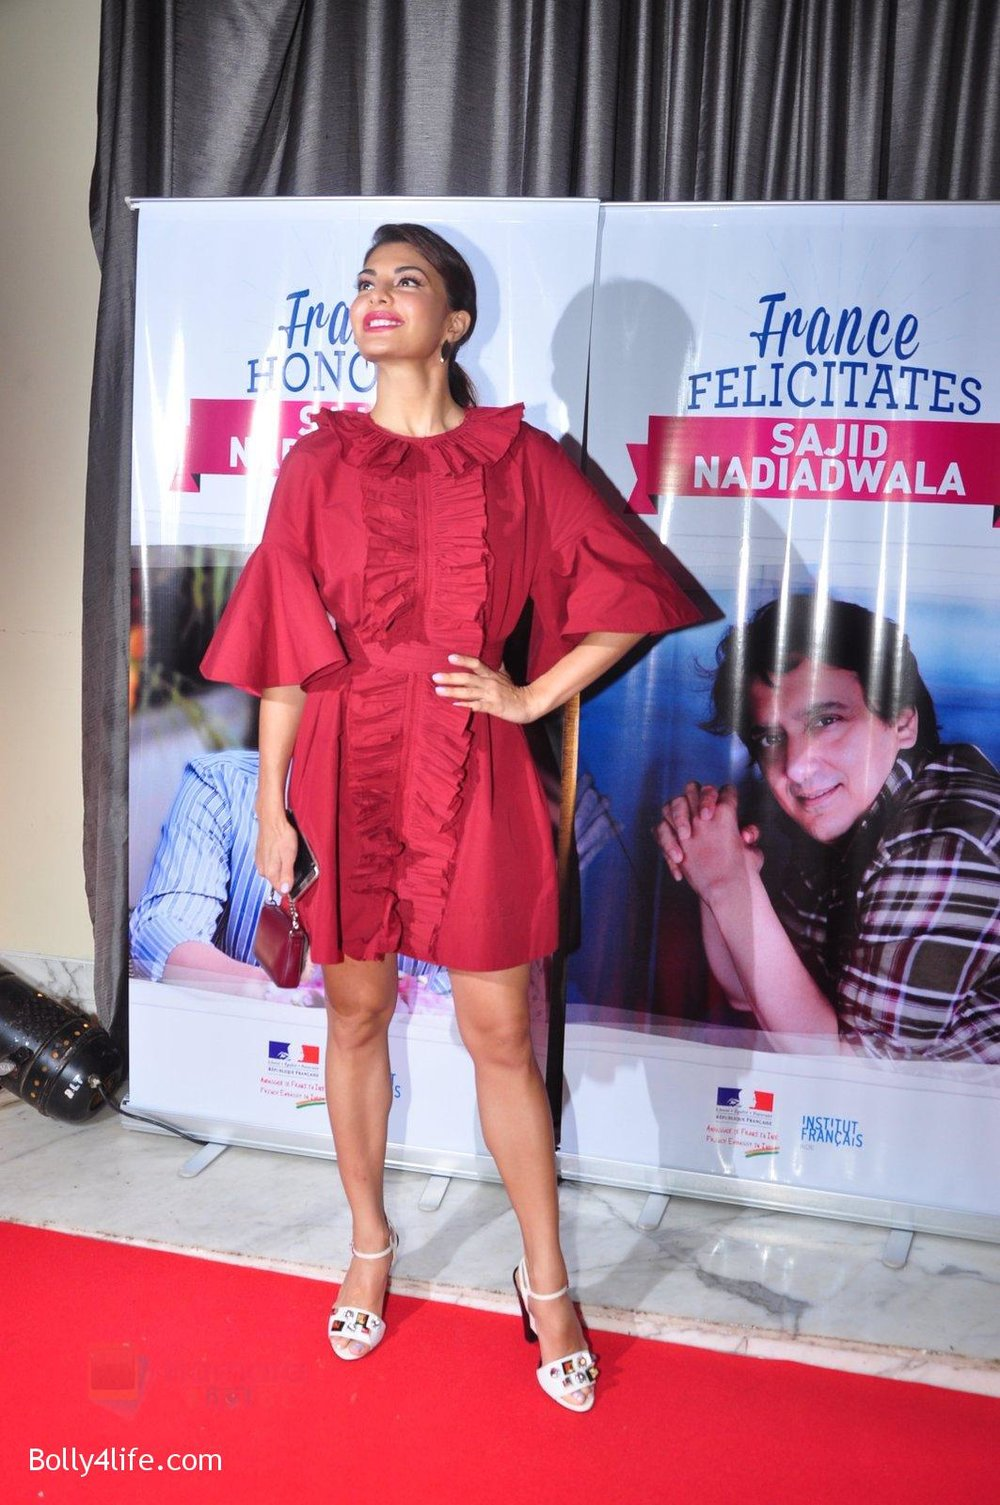 Jacqueline-Fernandez-at-the-launch-of-Sajid-Nadiadwala_s-france-honours-on-20th-Sept-2016-109.jpg